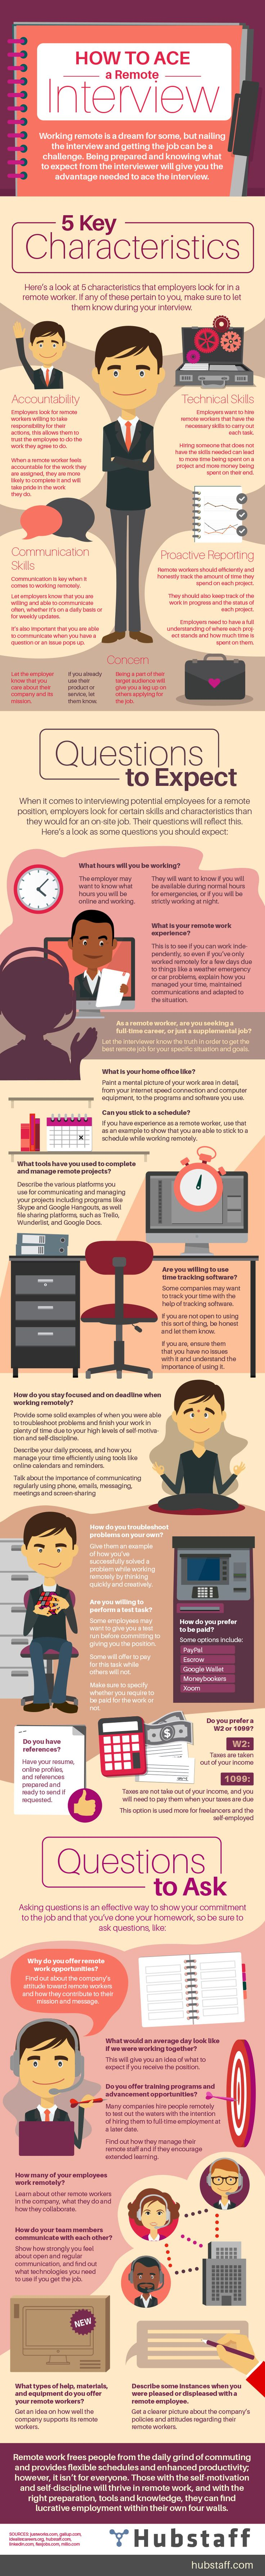 How to Ace a Remote Interview Infographic